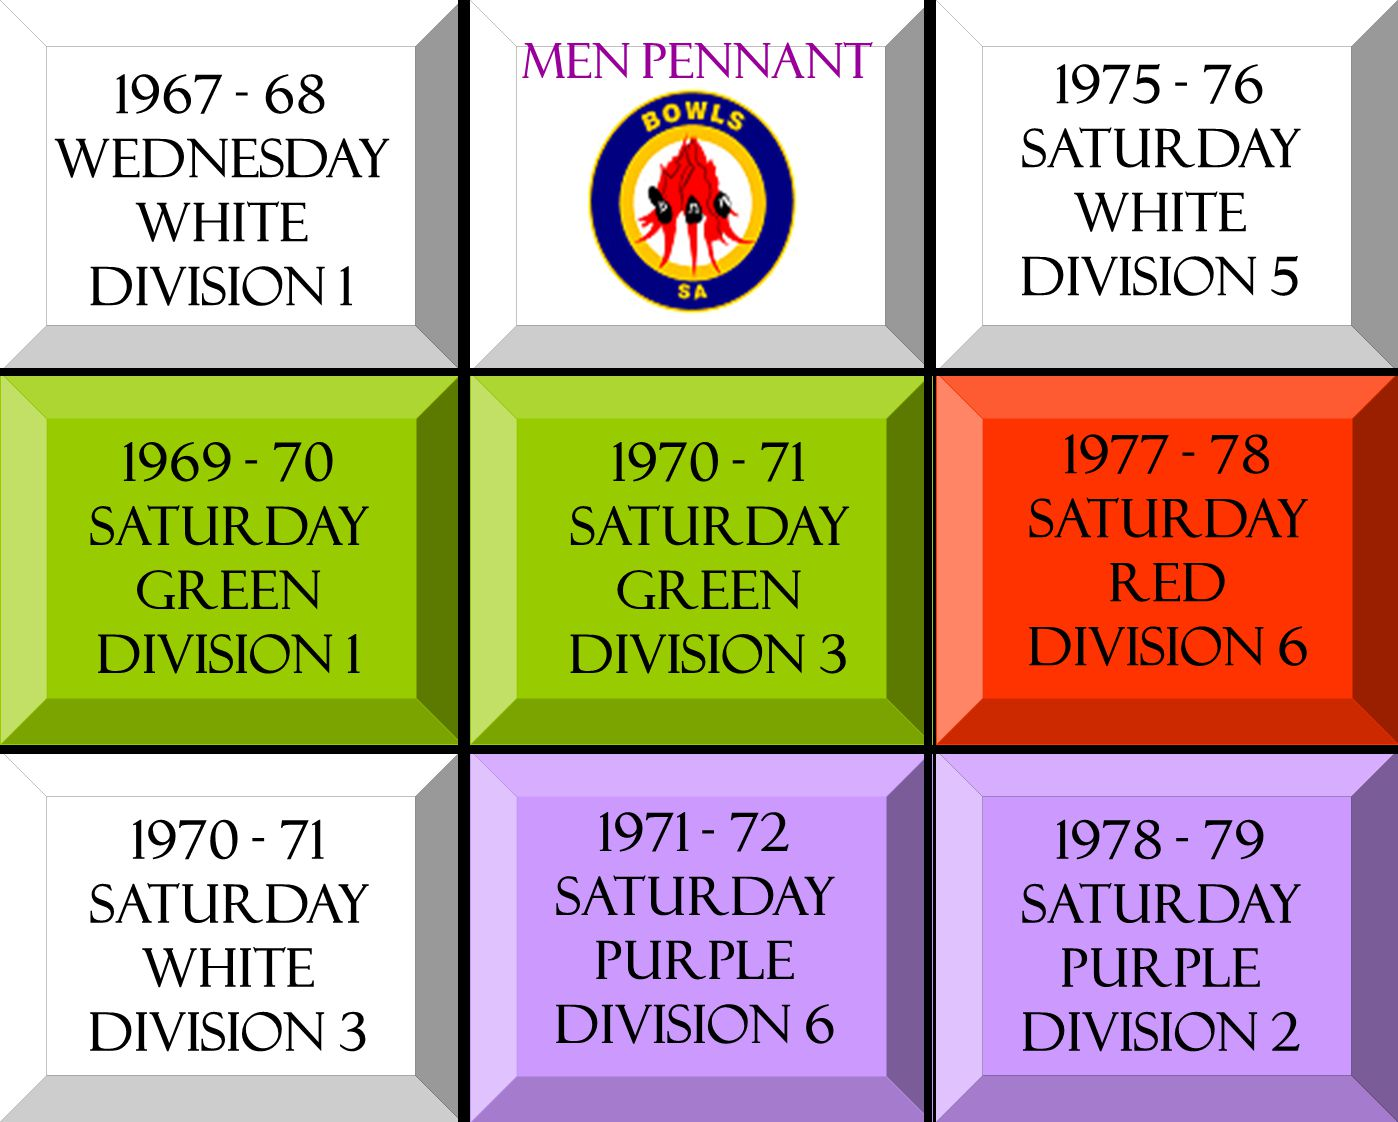 1967 - 68 WEDNESDAY WHITE DIVISION 1 1969 - 70 SATURDAY GREEN DIVISION 1 1970 - 71 SATURDAY WHITE DIVISION 3 1970 - 71 SATURDAY GREEN DIVISION 3 1971